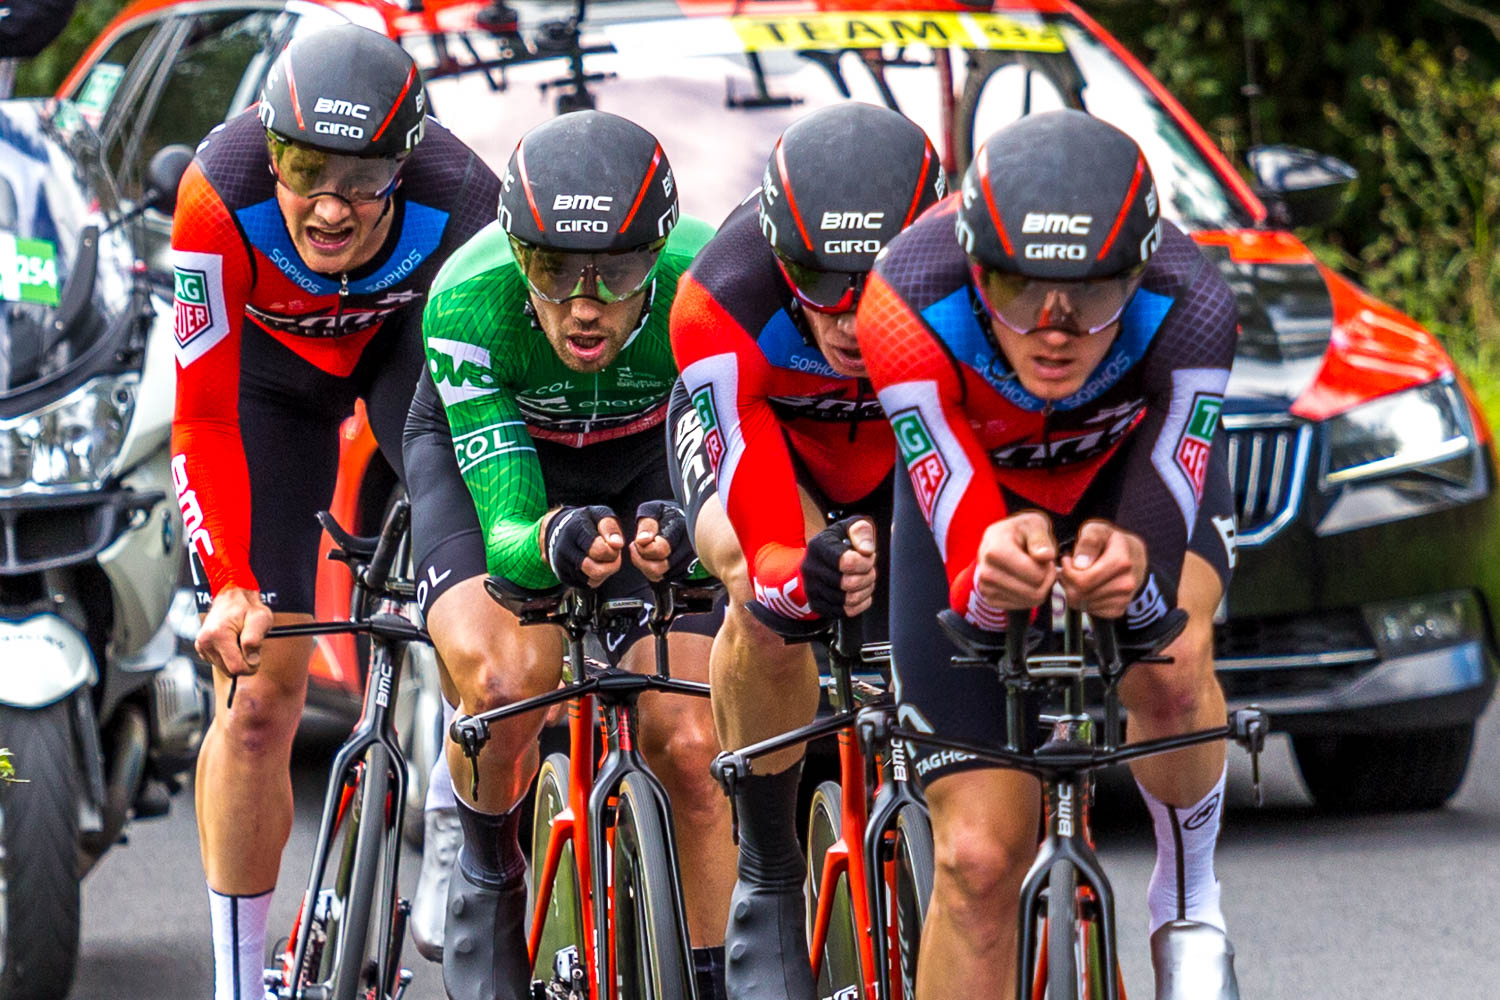 Tour of Britain 2018 on the Whinlatter Pass